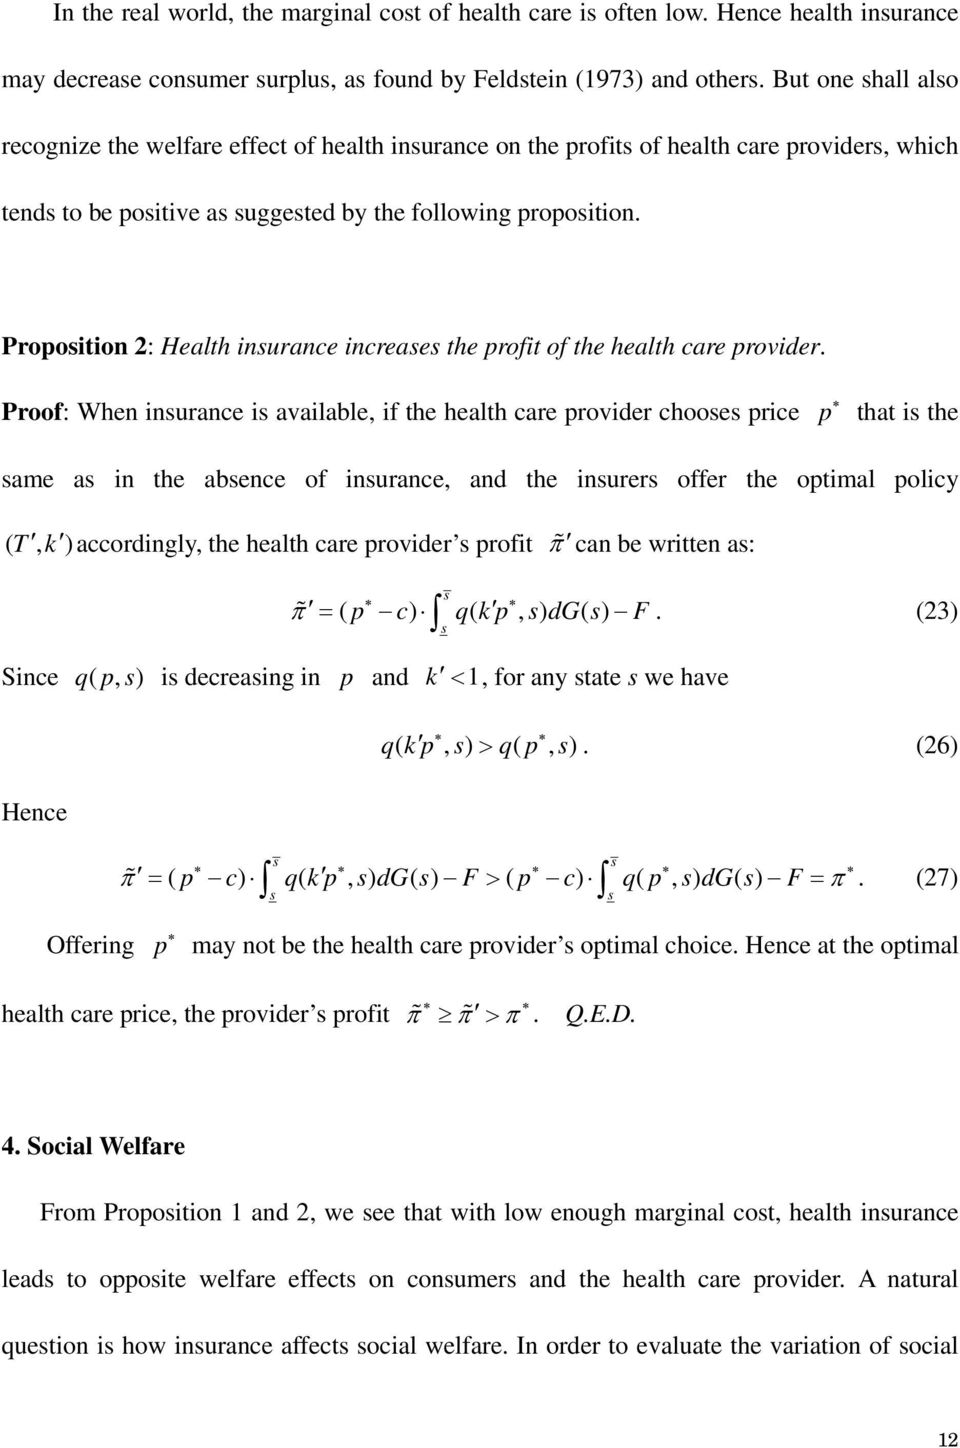 Propoition 2: Health inurance increae the profit of the health care provider.